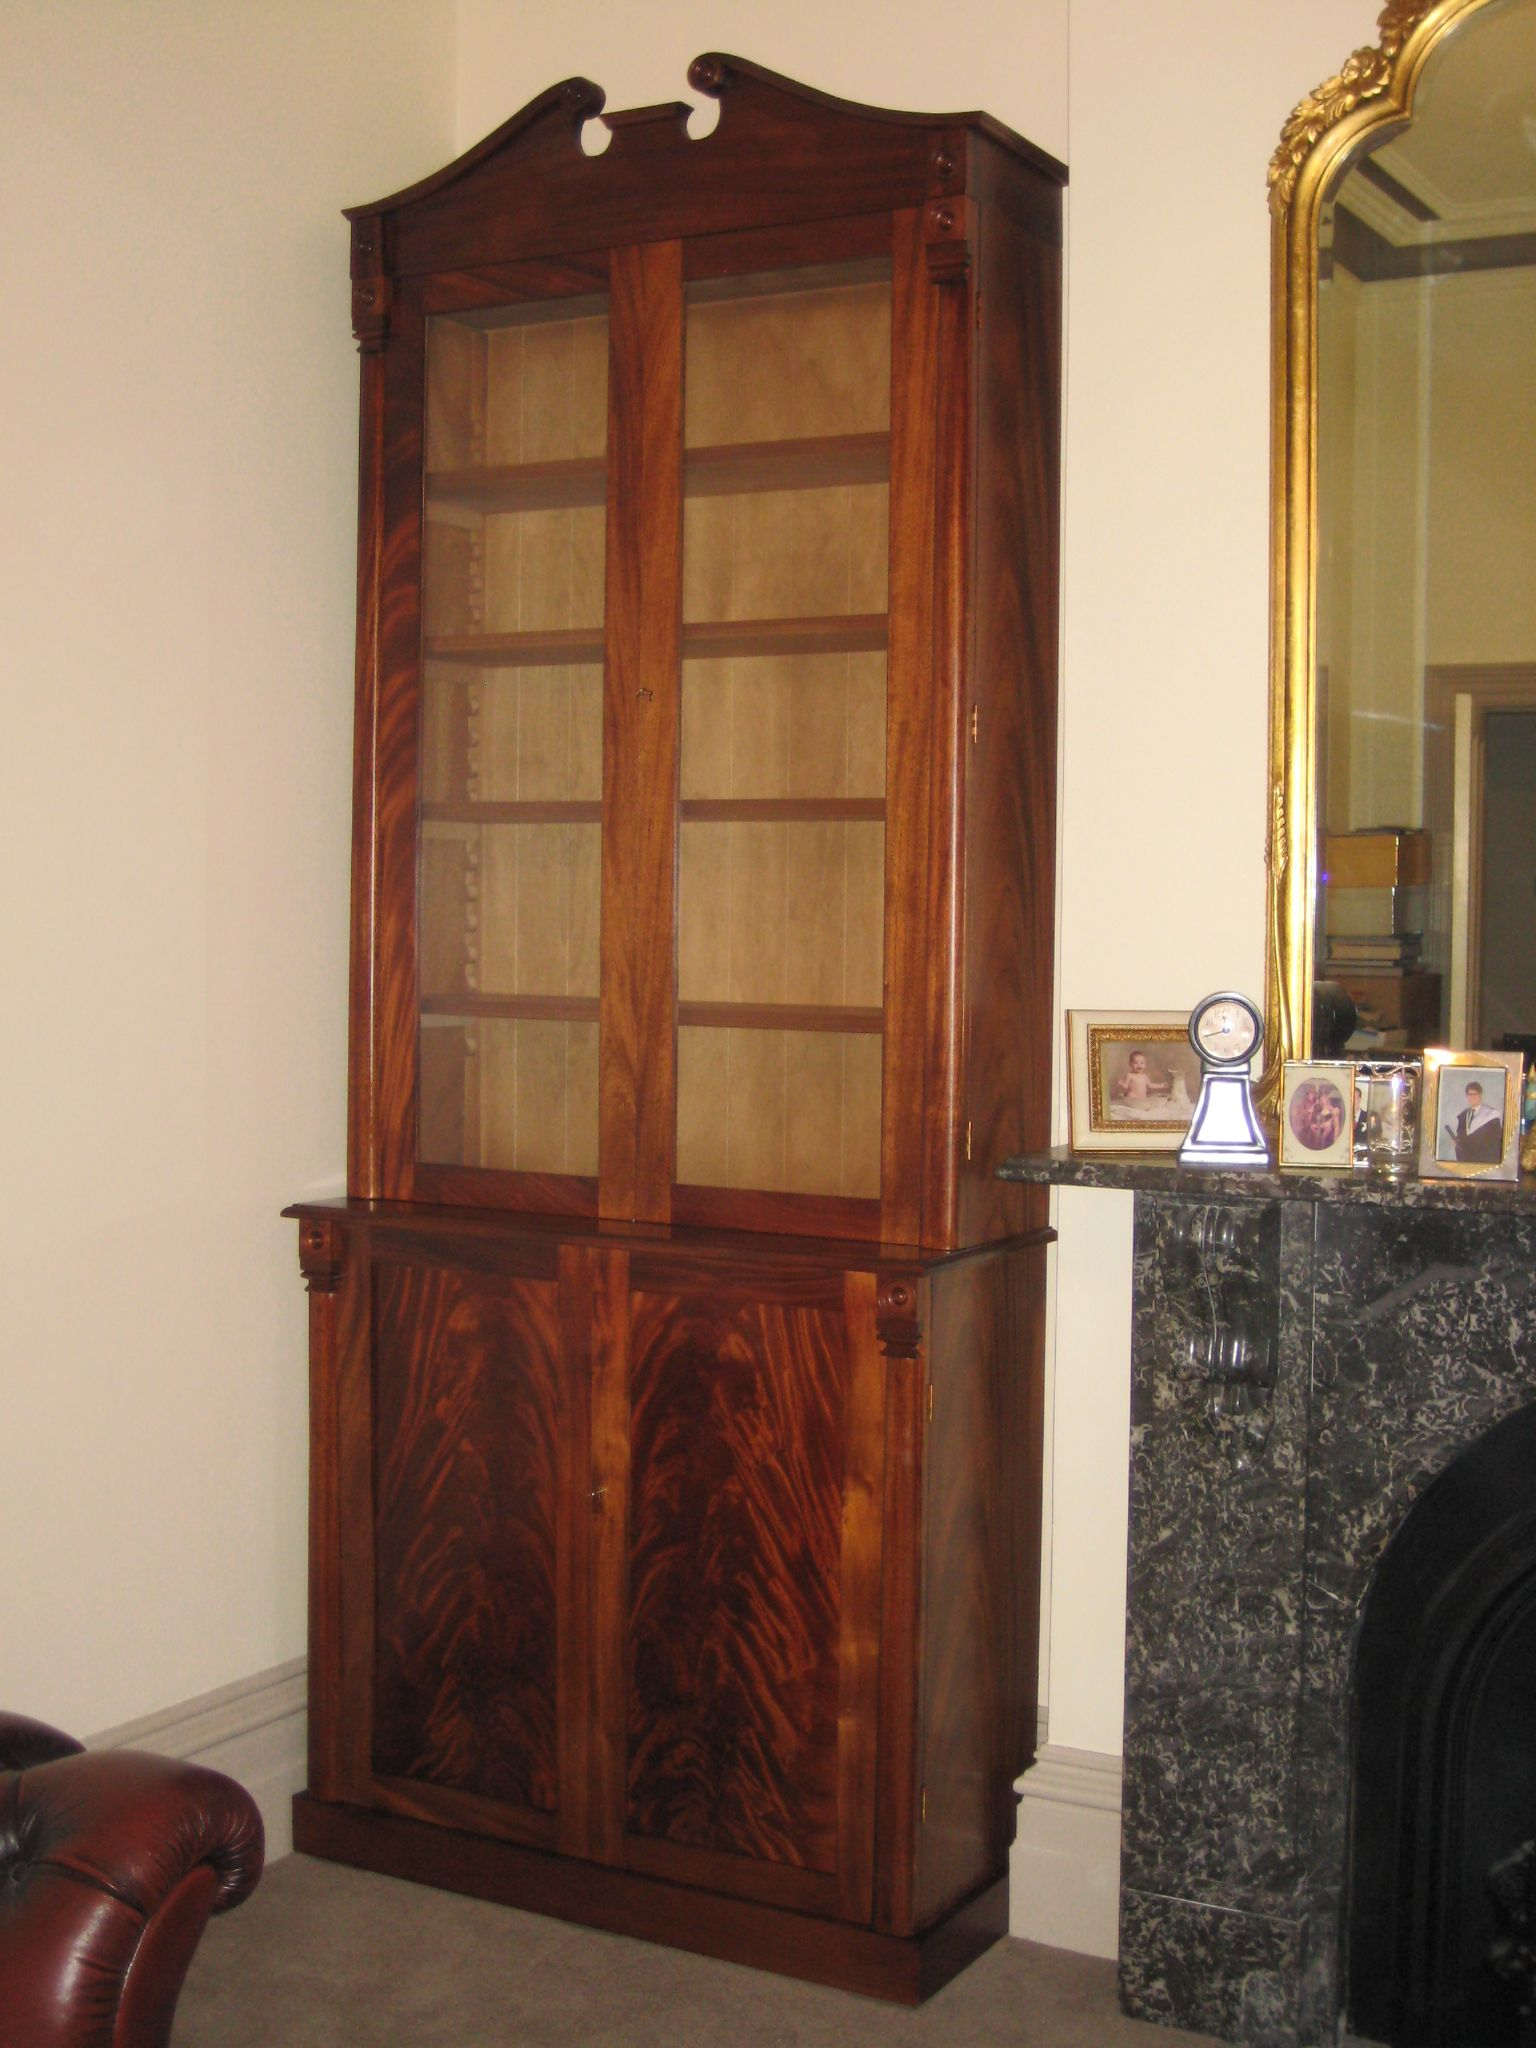 A Superb Hand Made Antique Reproduction Bookcase One Of Pair Magnificently Crafted For